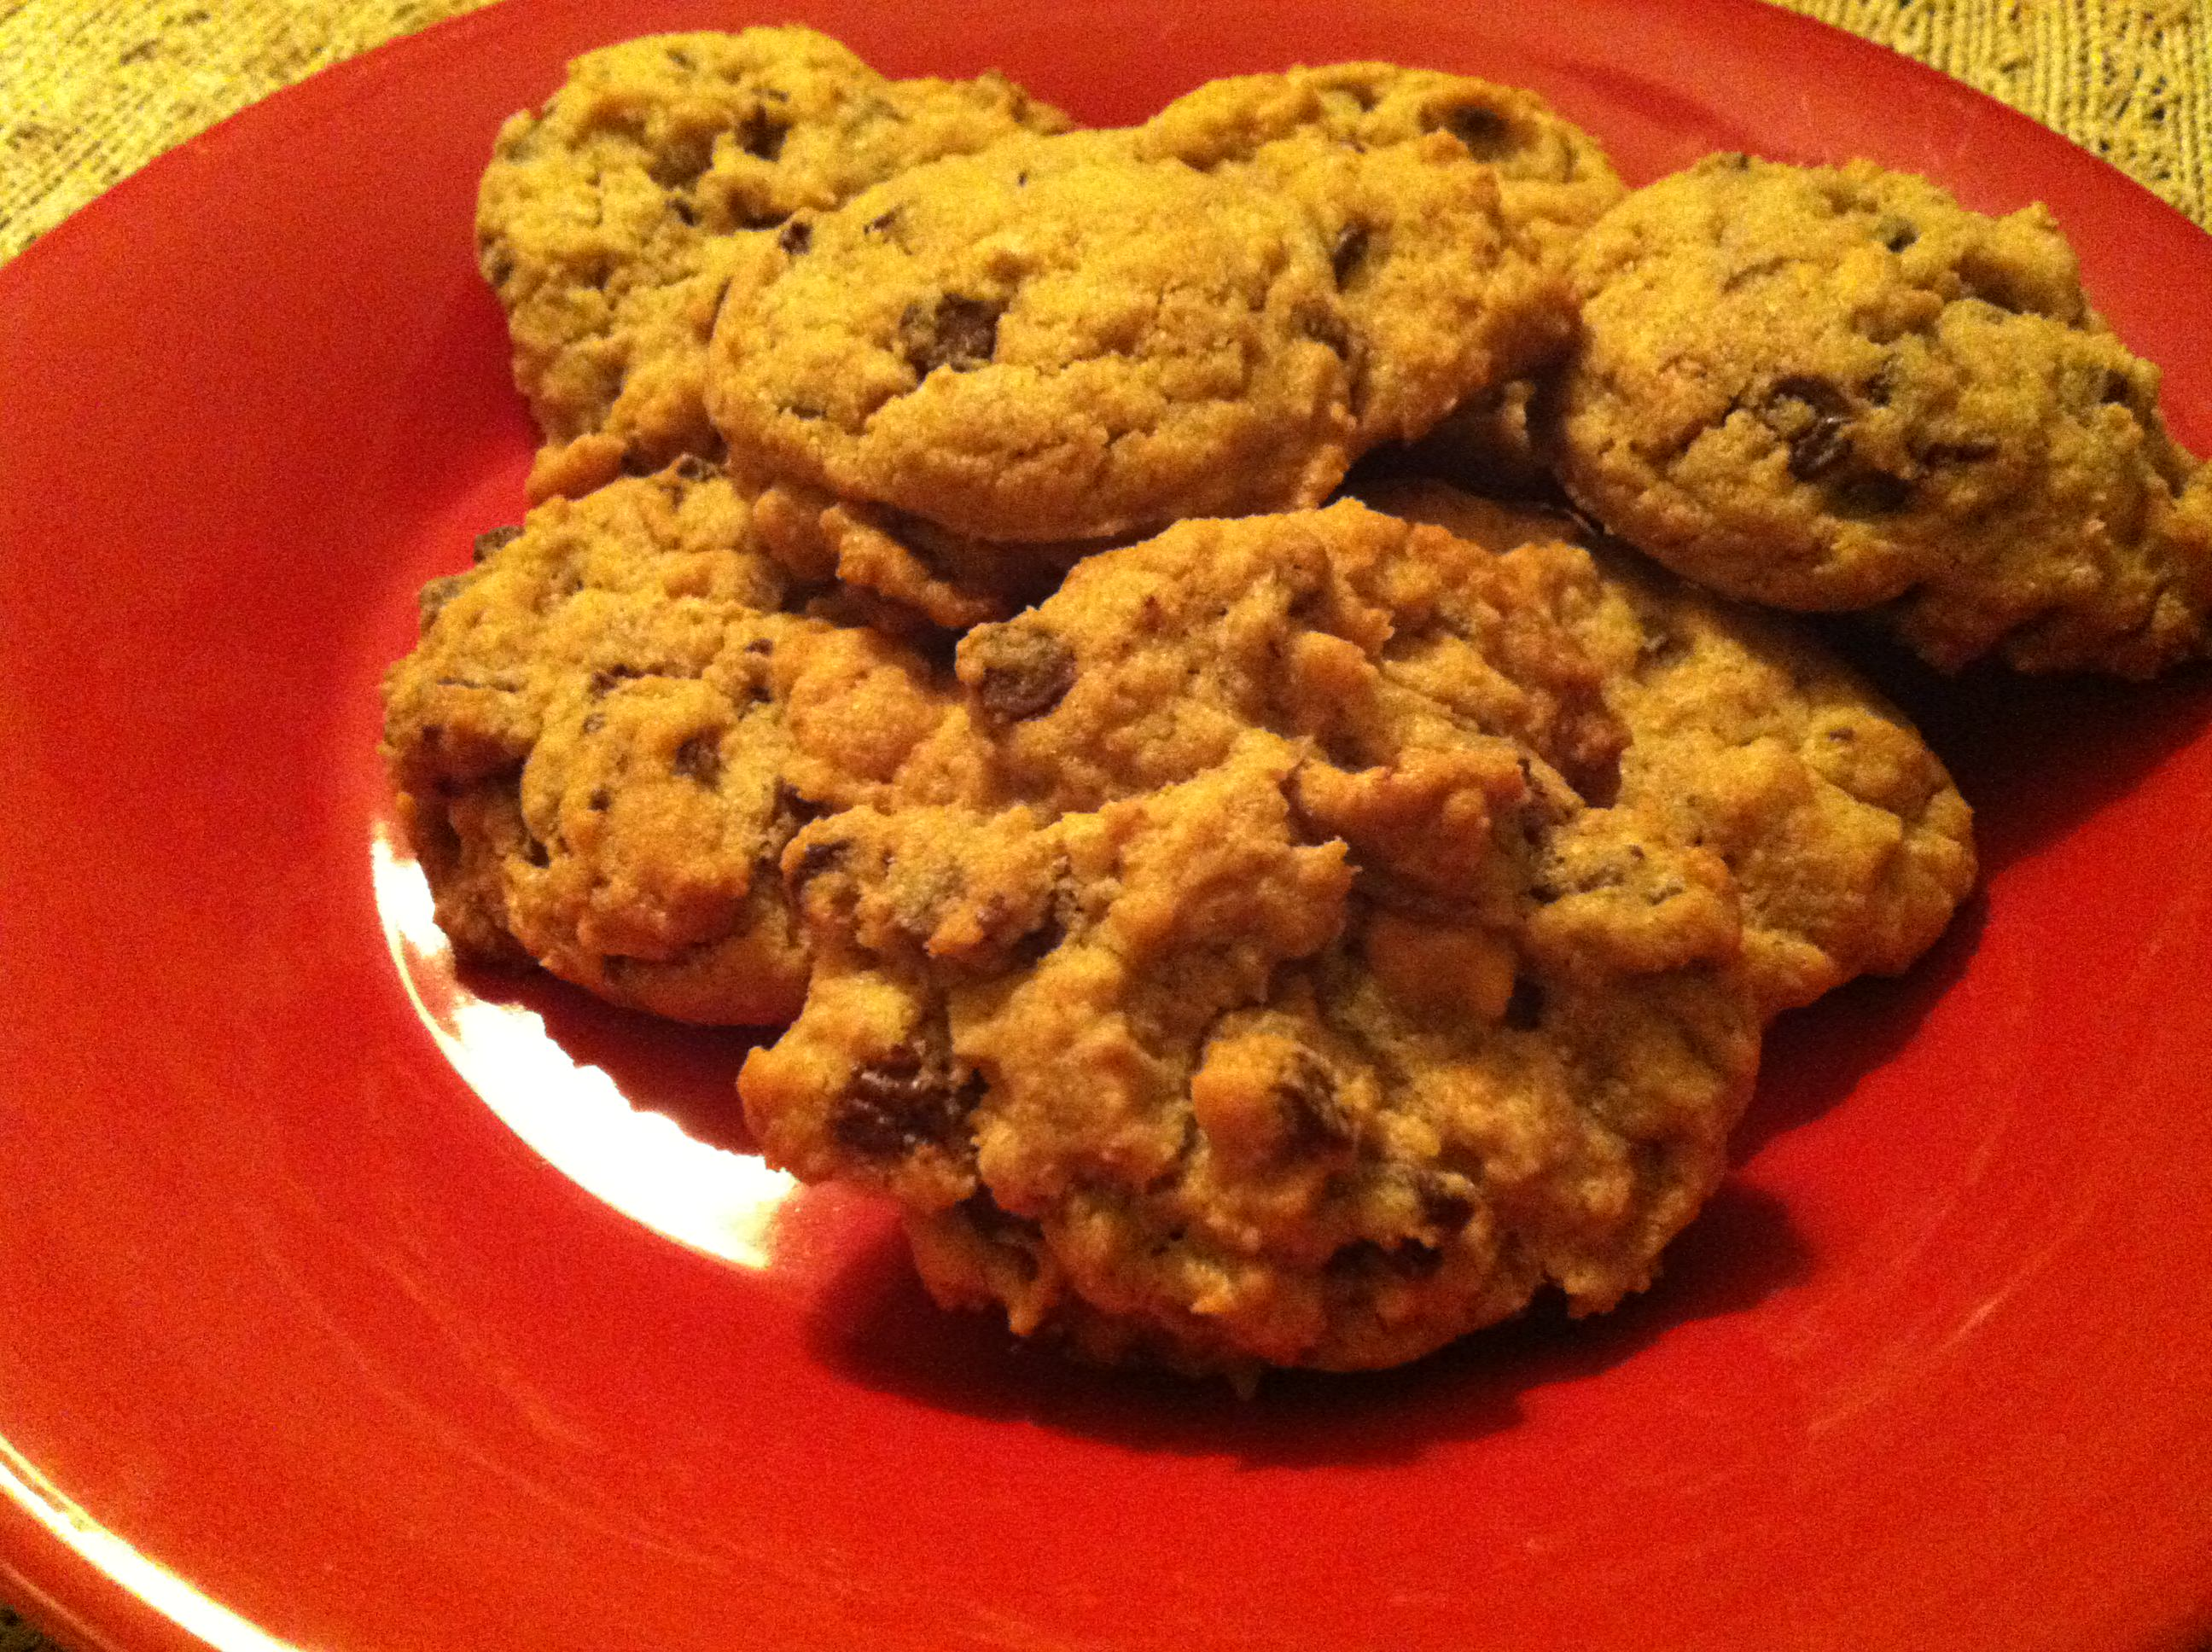 Chocolate and Peanut Butter Chip Cookies from A Cedar Spoon